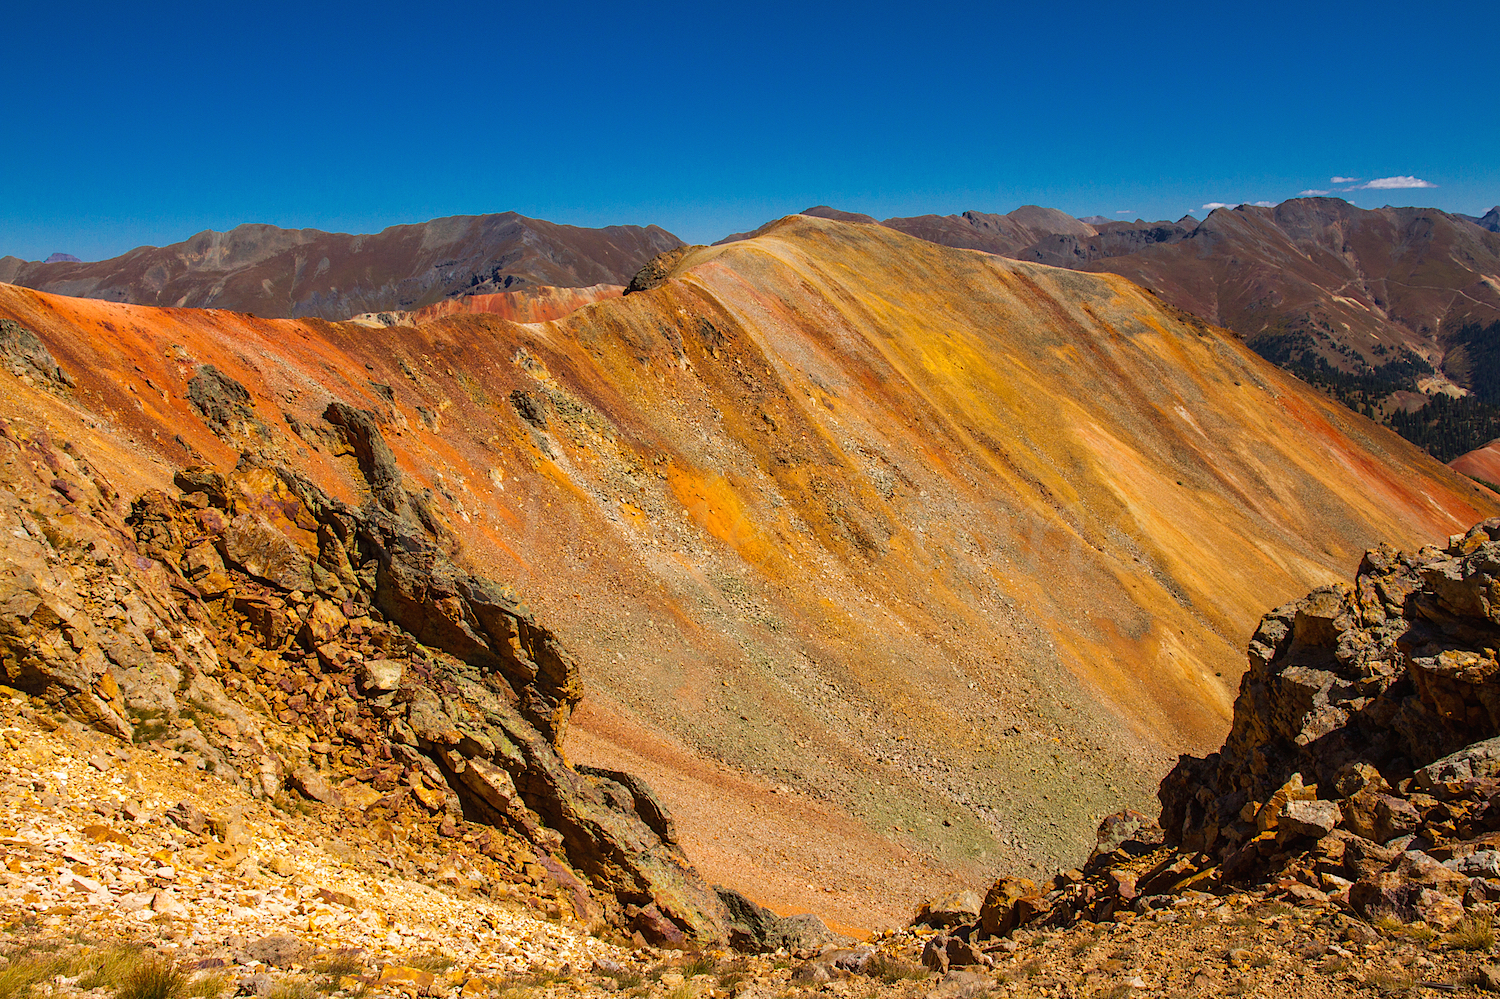 Red Mountain #3, Image #1571